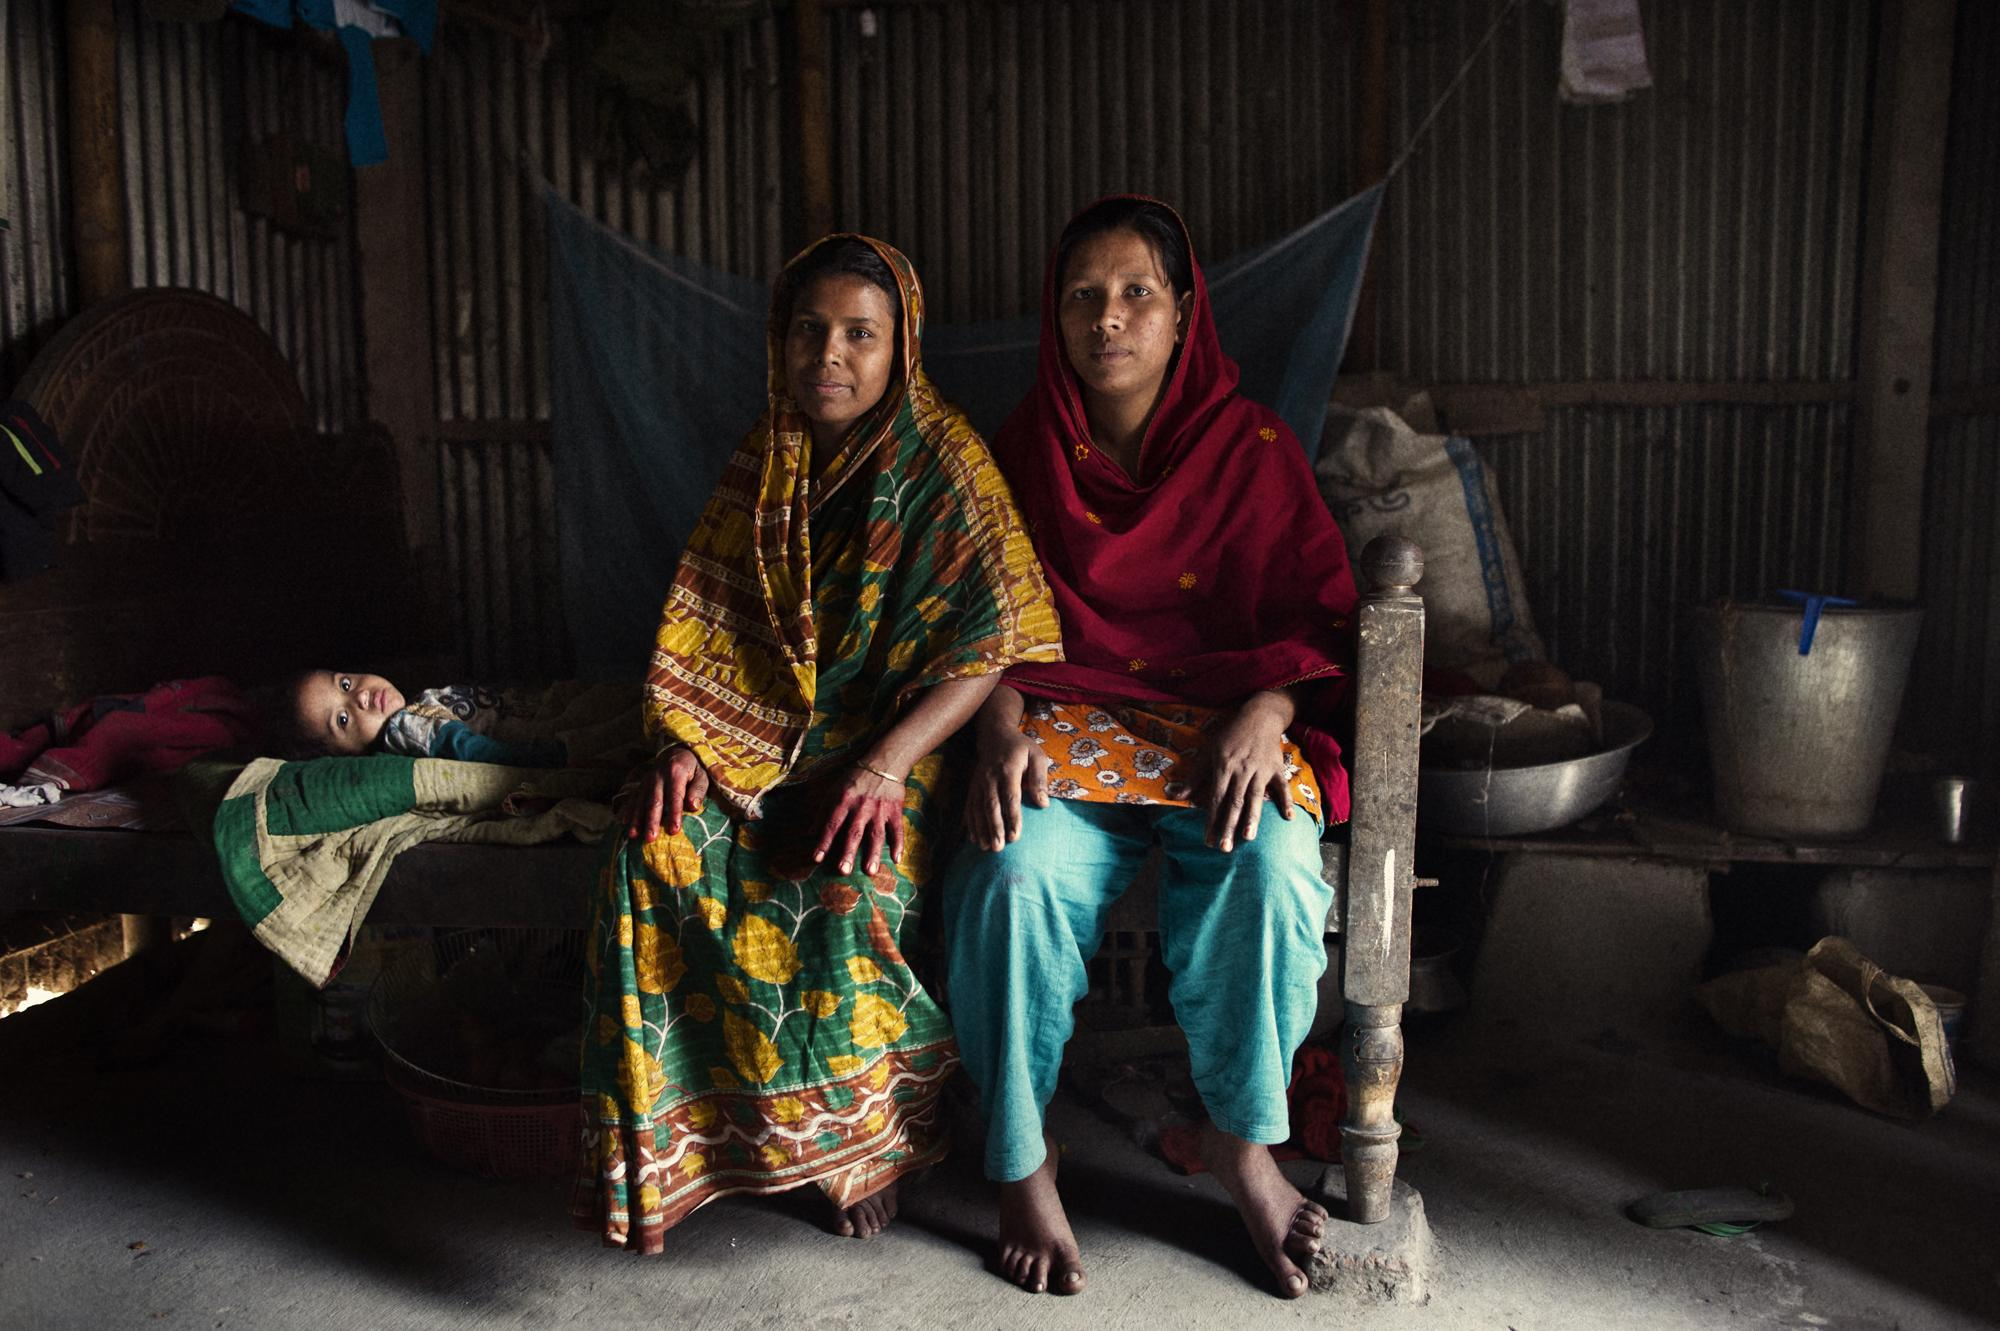 Bangladesh, Dhaka, Narayon Gong, Katabo village. January 2012 Portrait of Salma (red), she is twenty-four years old, and got her first microcredit two years ago, she makes Shari (traditional clothes for women) together with her cousin Muslima (green) twenty-two years old, she has one son and one daughter (in the picture) two and a half years old. Muslima got her first microcredit three years ago.